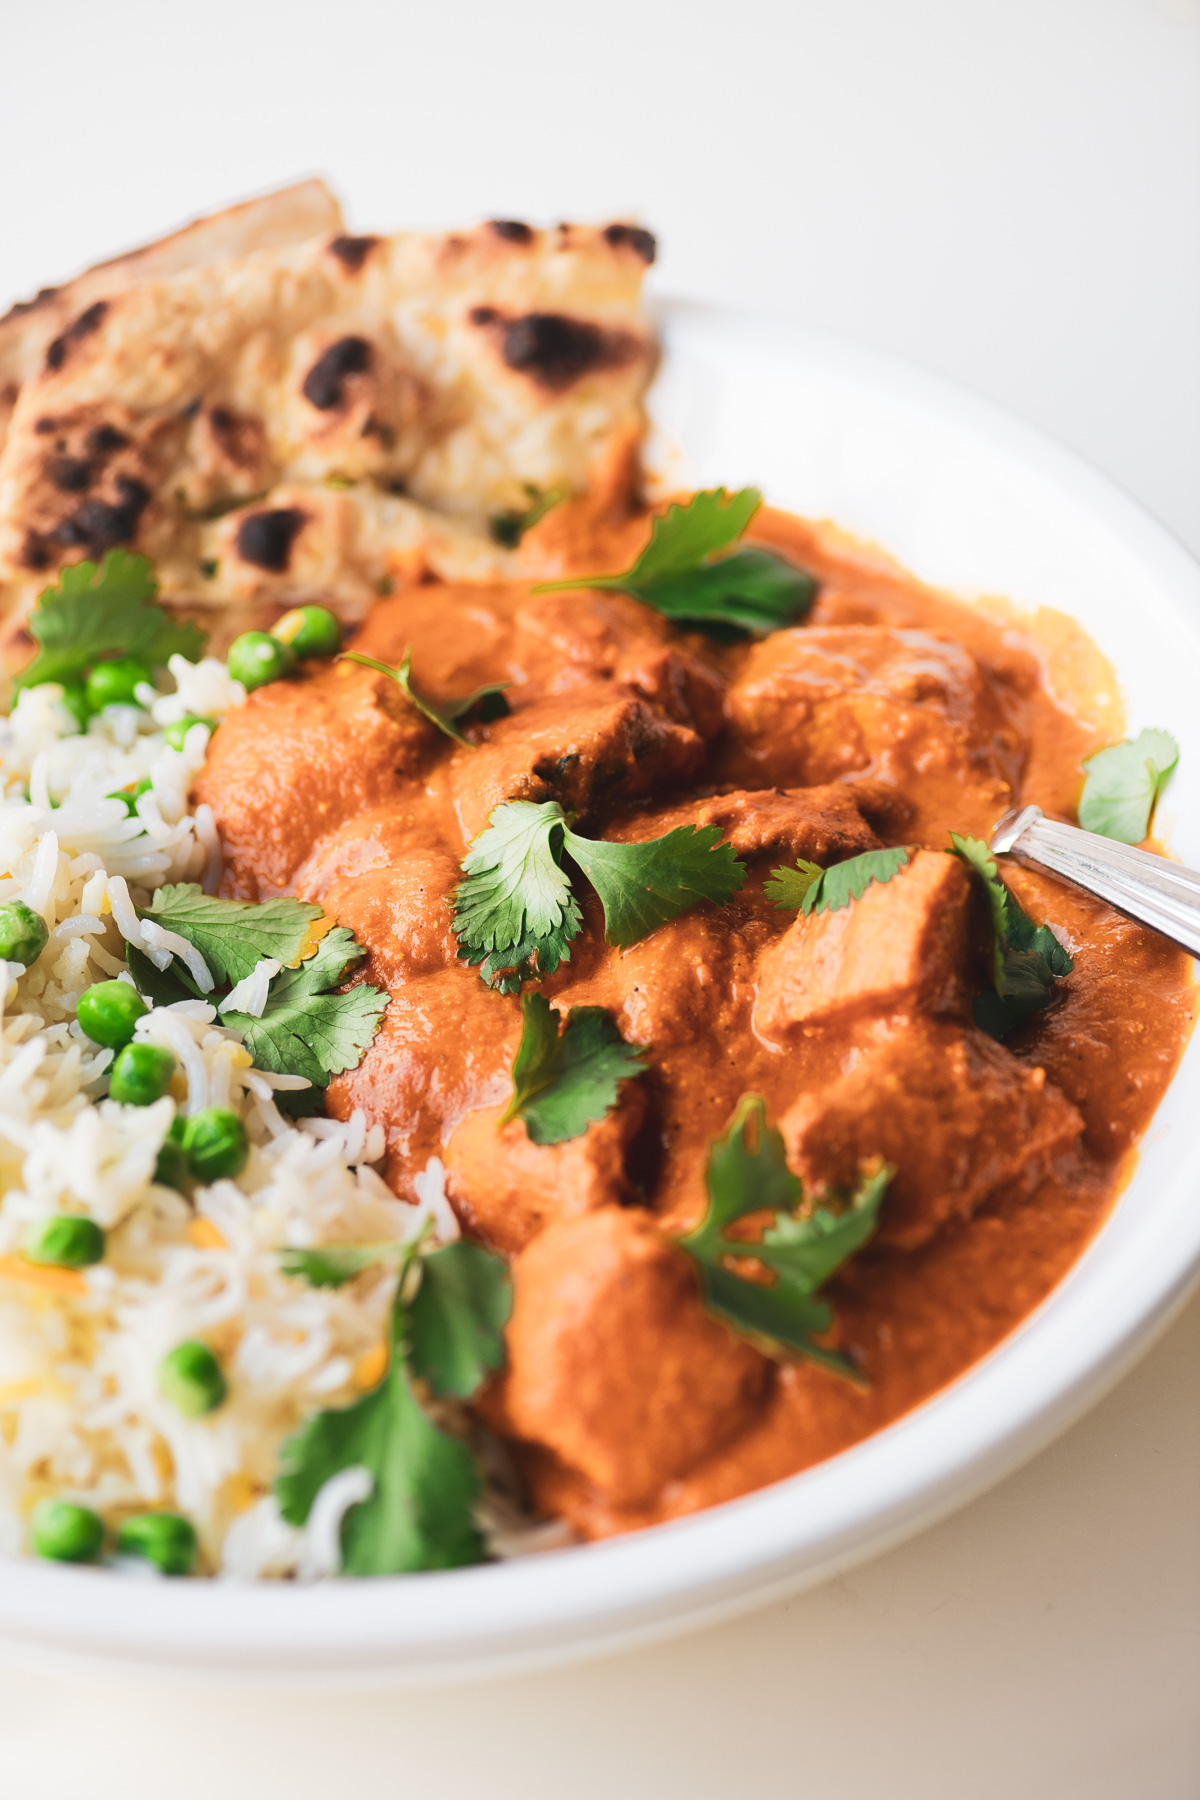 chicken tikka masala in a bowl with rice and naan bread